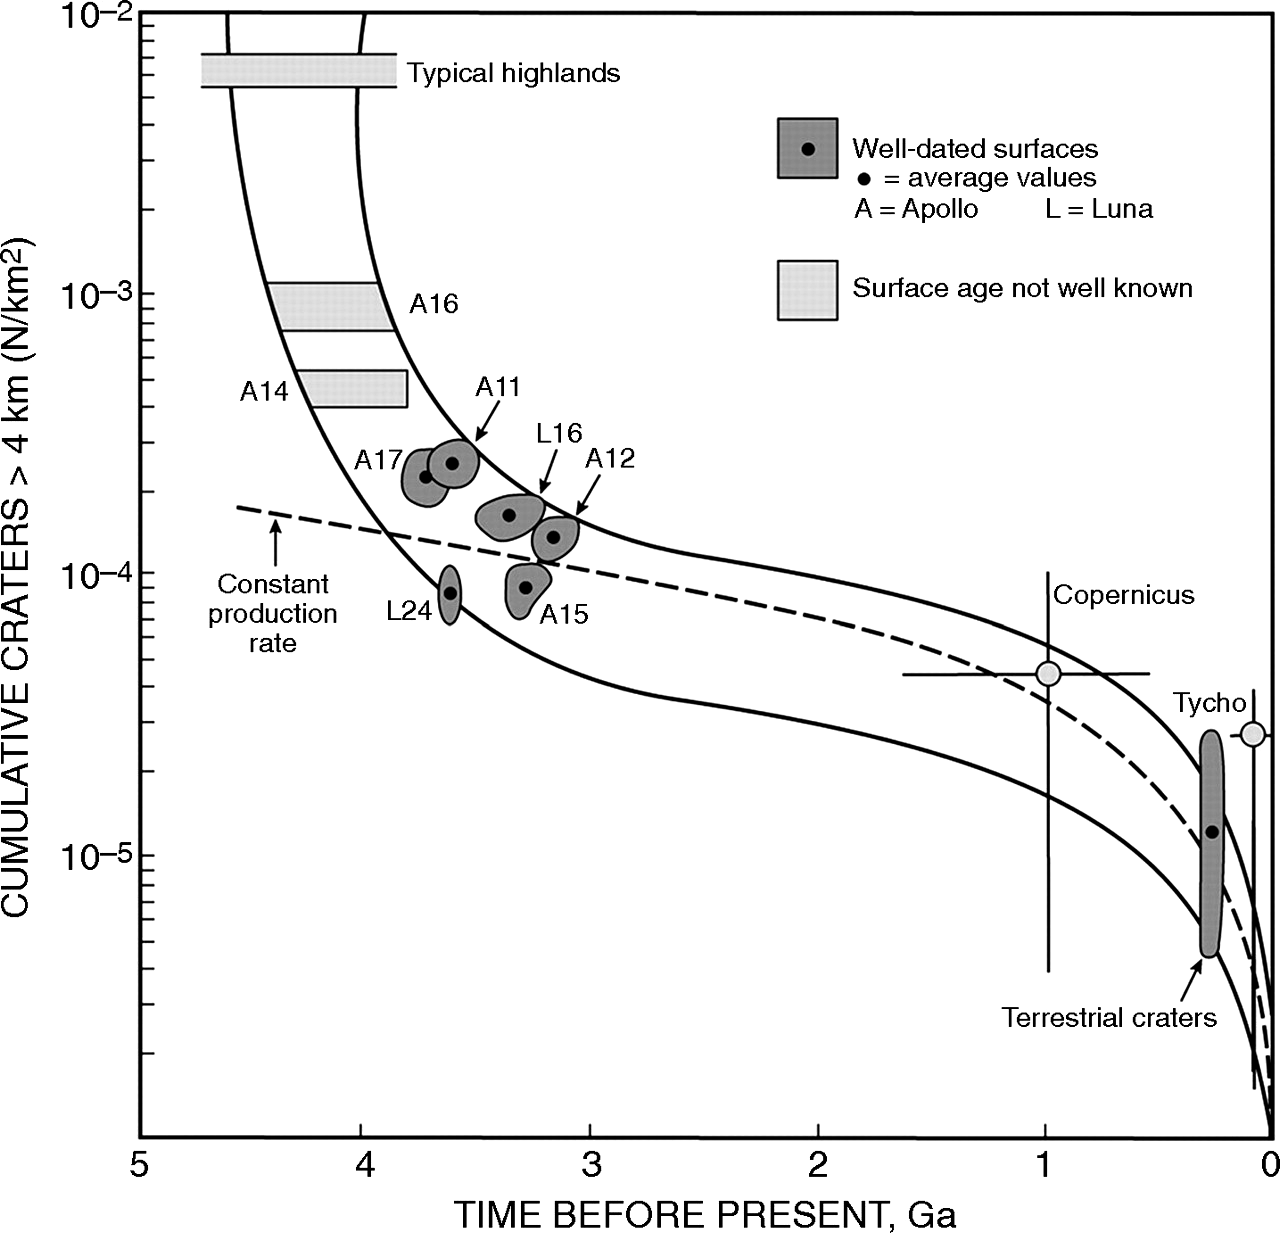 Age Of Lunar Surfaces Versus Impact Crater Density